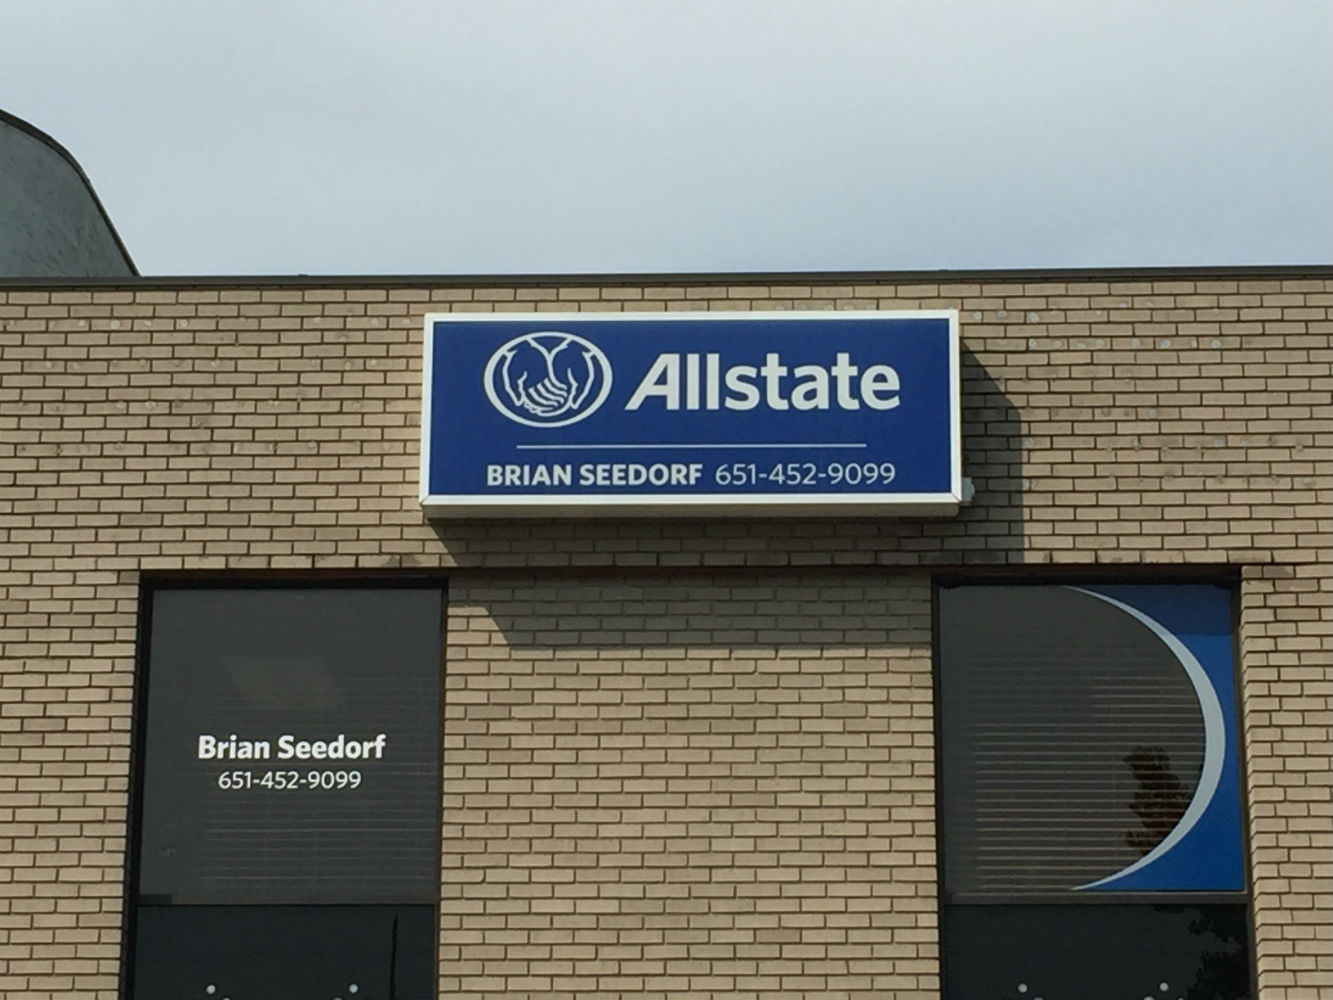 Brian Seedorf: Allstate Insurance image 2